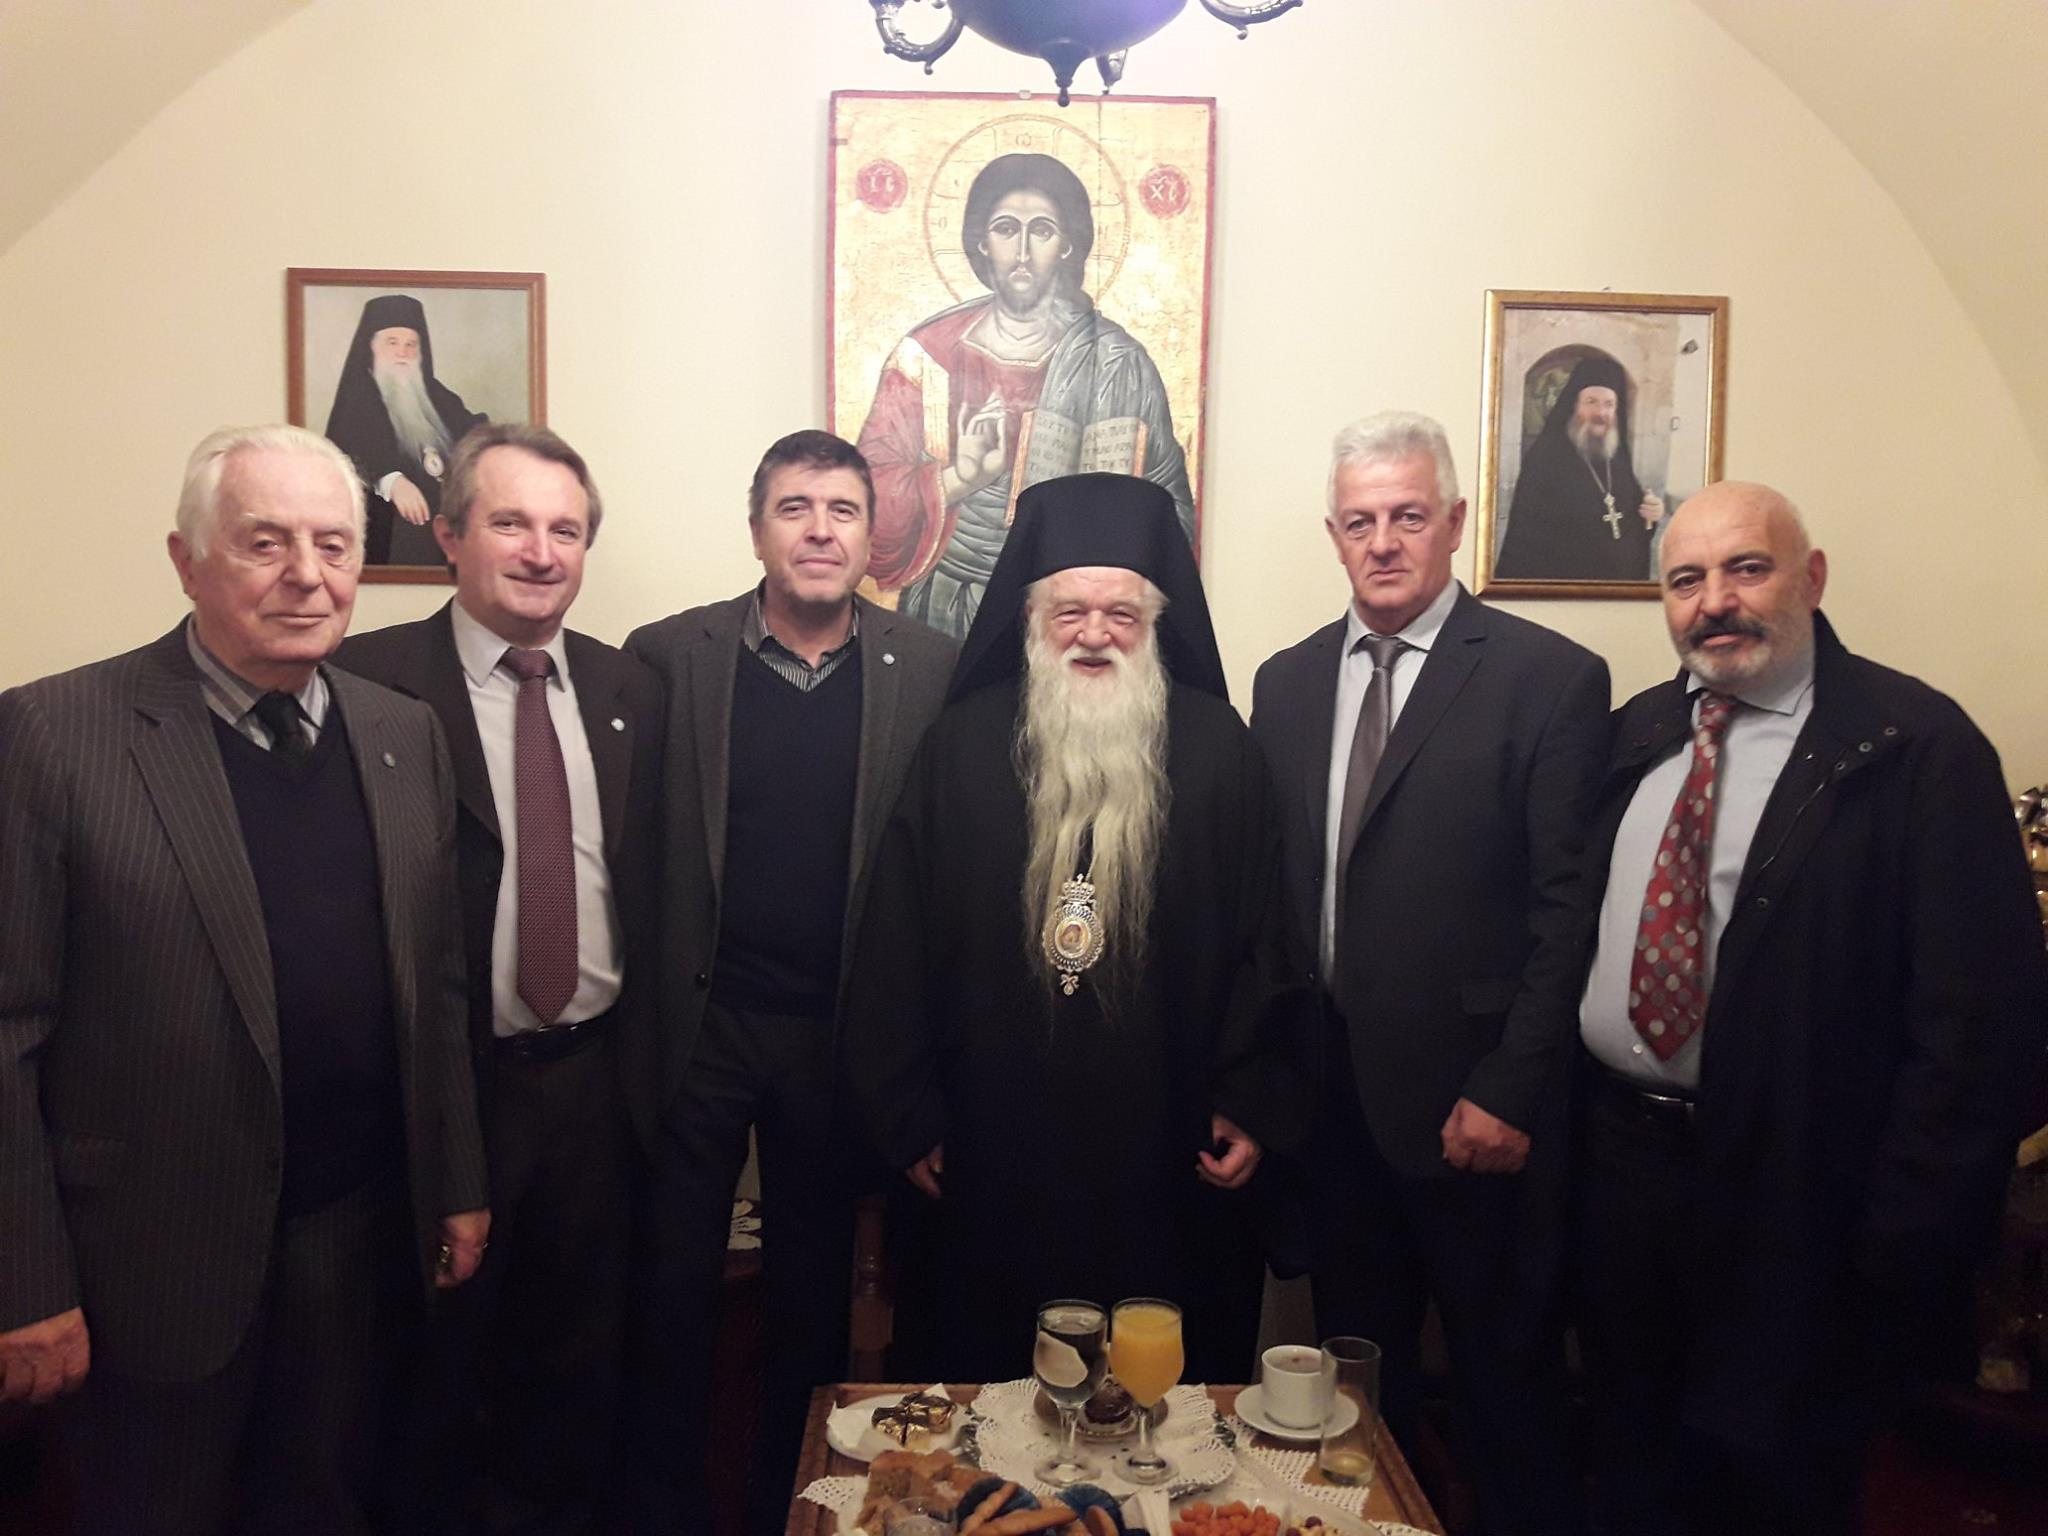 Bishop Amvrosios of Kalavryta (C) poses with followers.